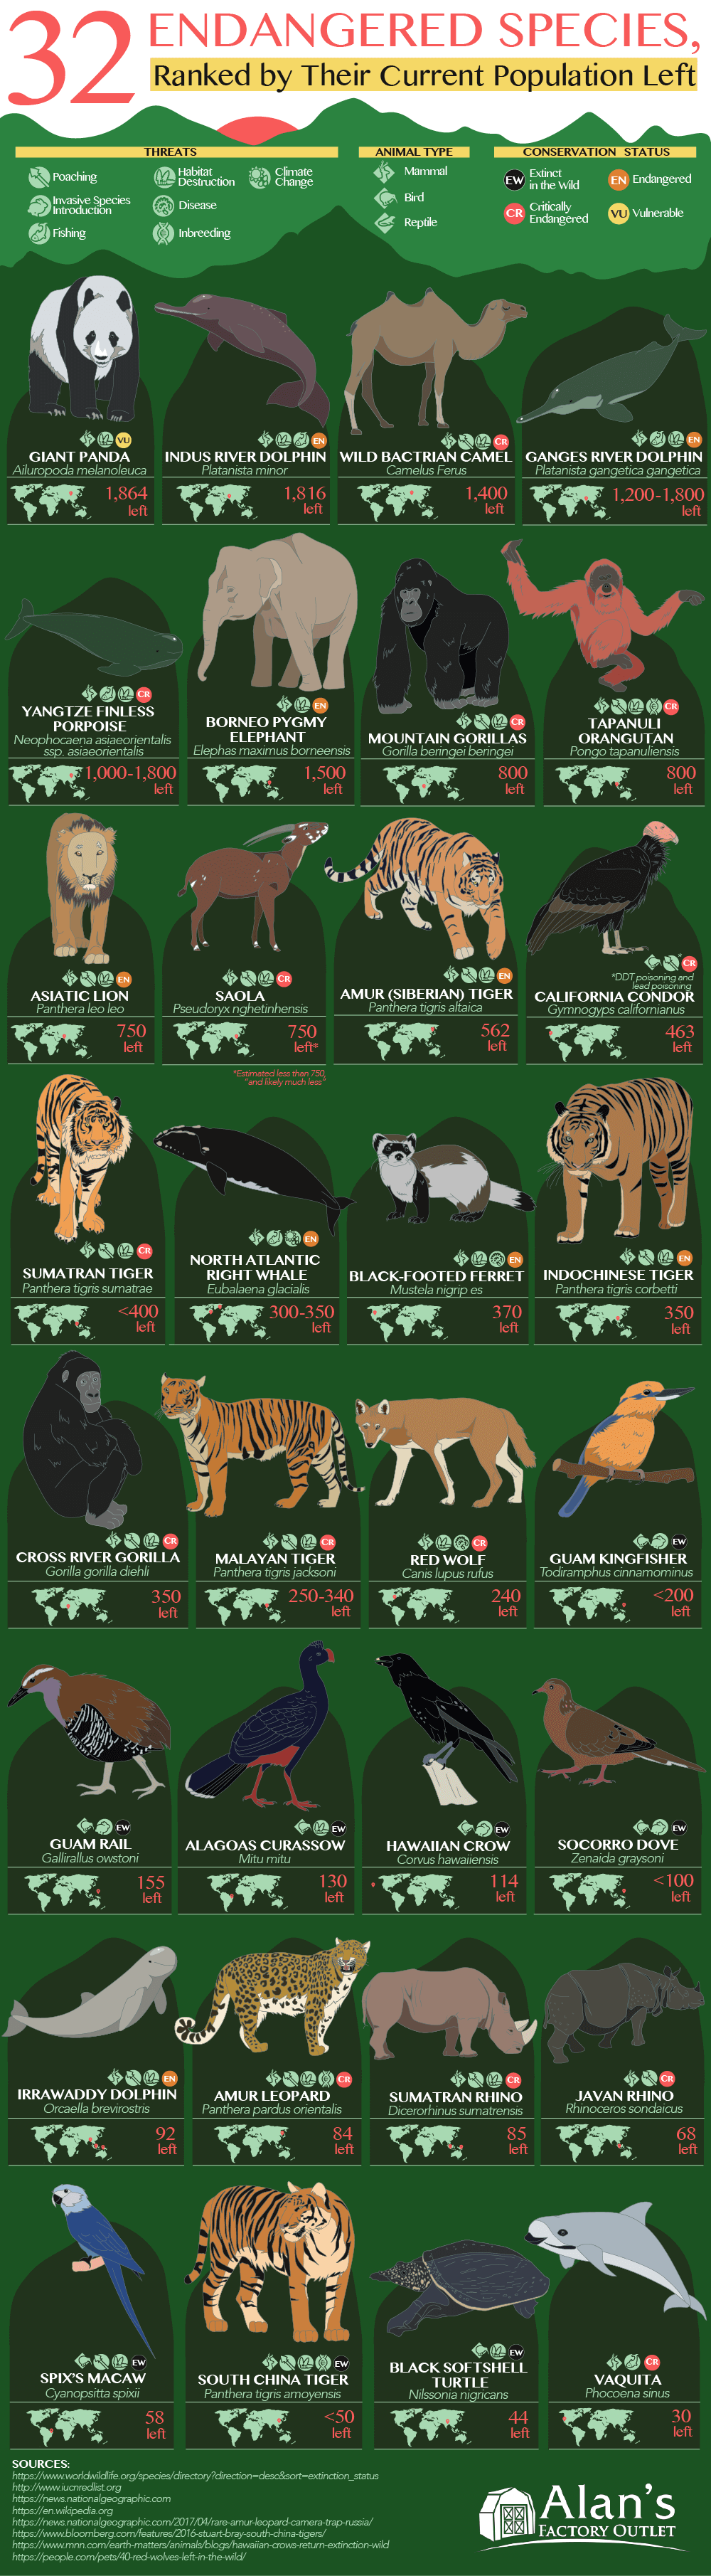 And Then There Were None: 32 Endangered Species, Ranked by Population - Infographic